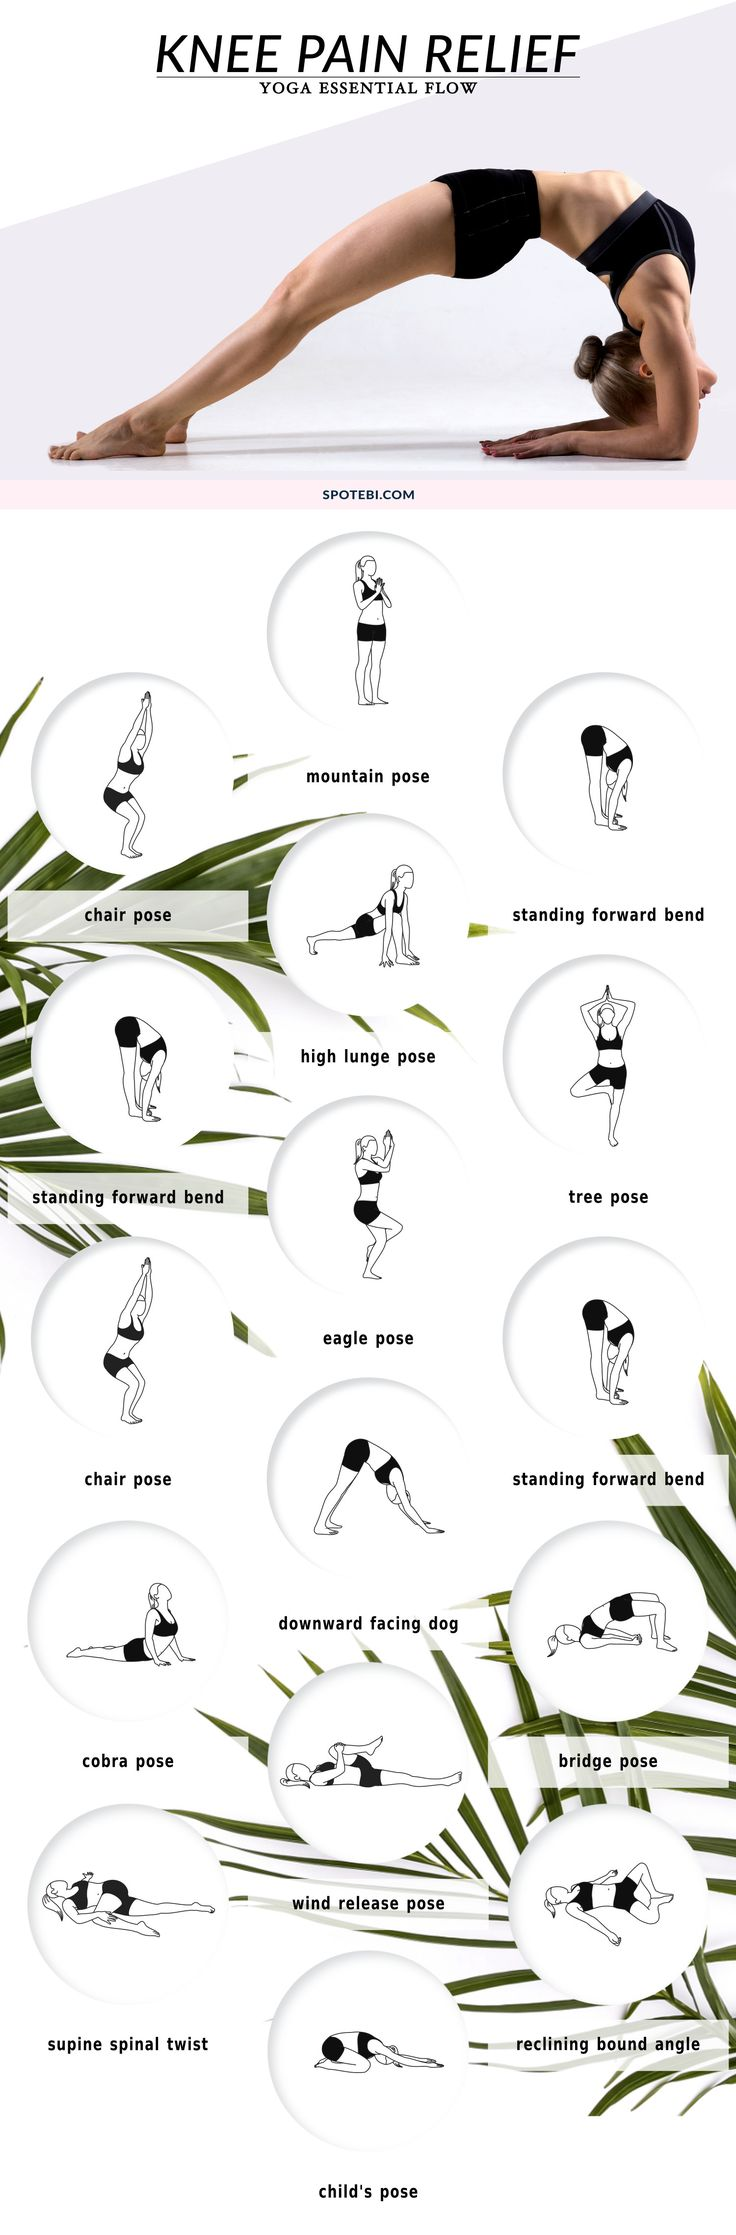 Relieve knee pain at home with this 12-minute yoga essential flow. Perform these...